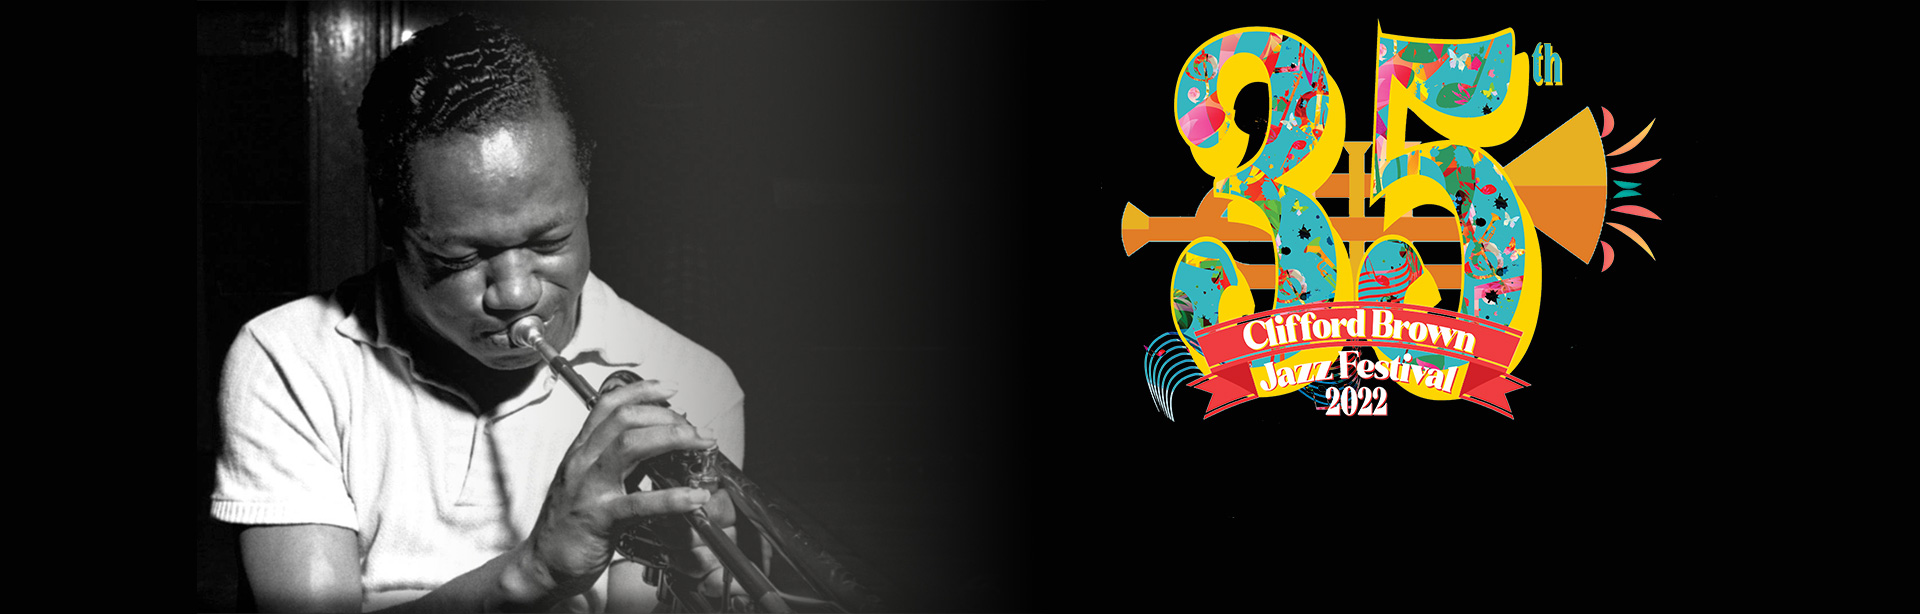 2019 Clifford Brown Jazz Festival June 19 to 22